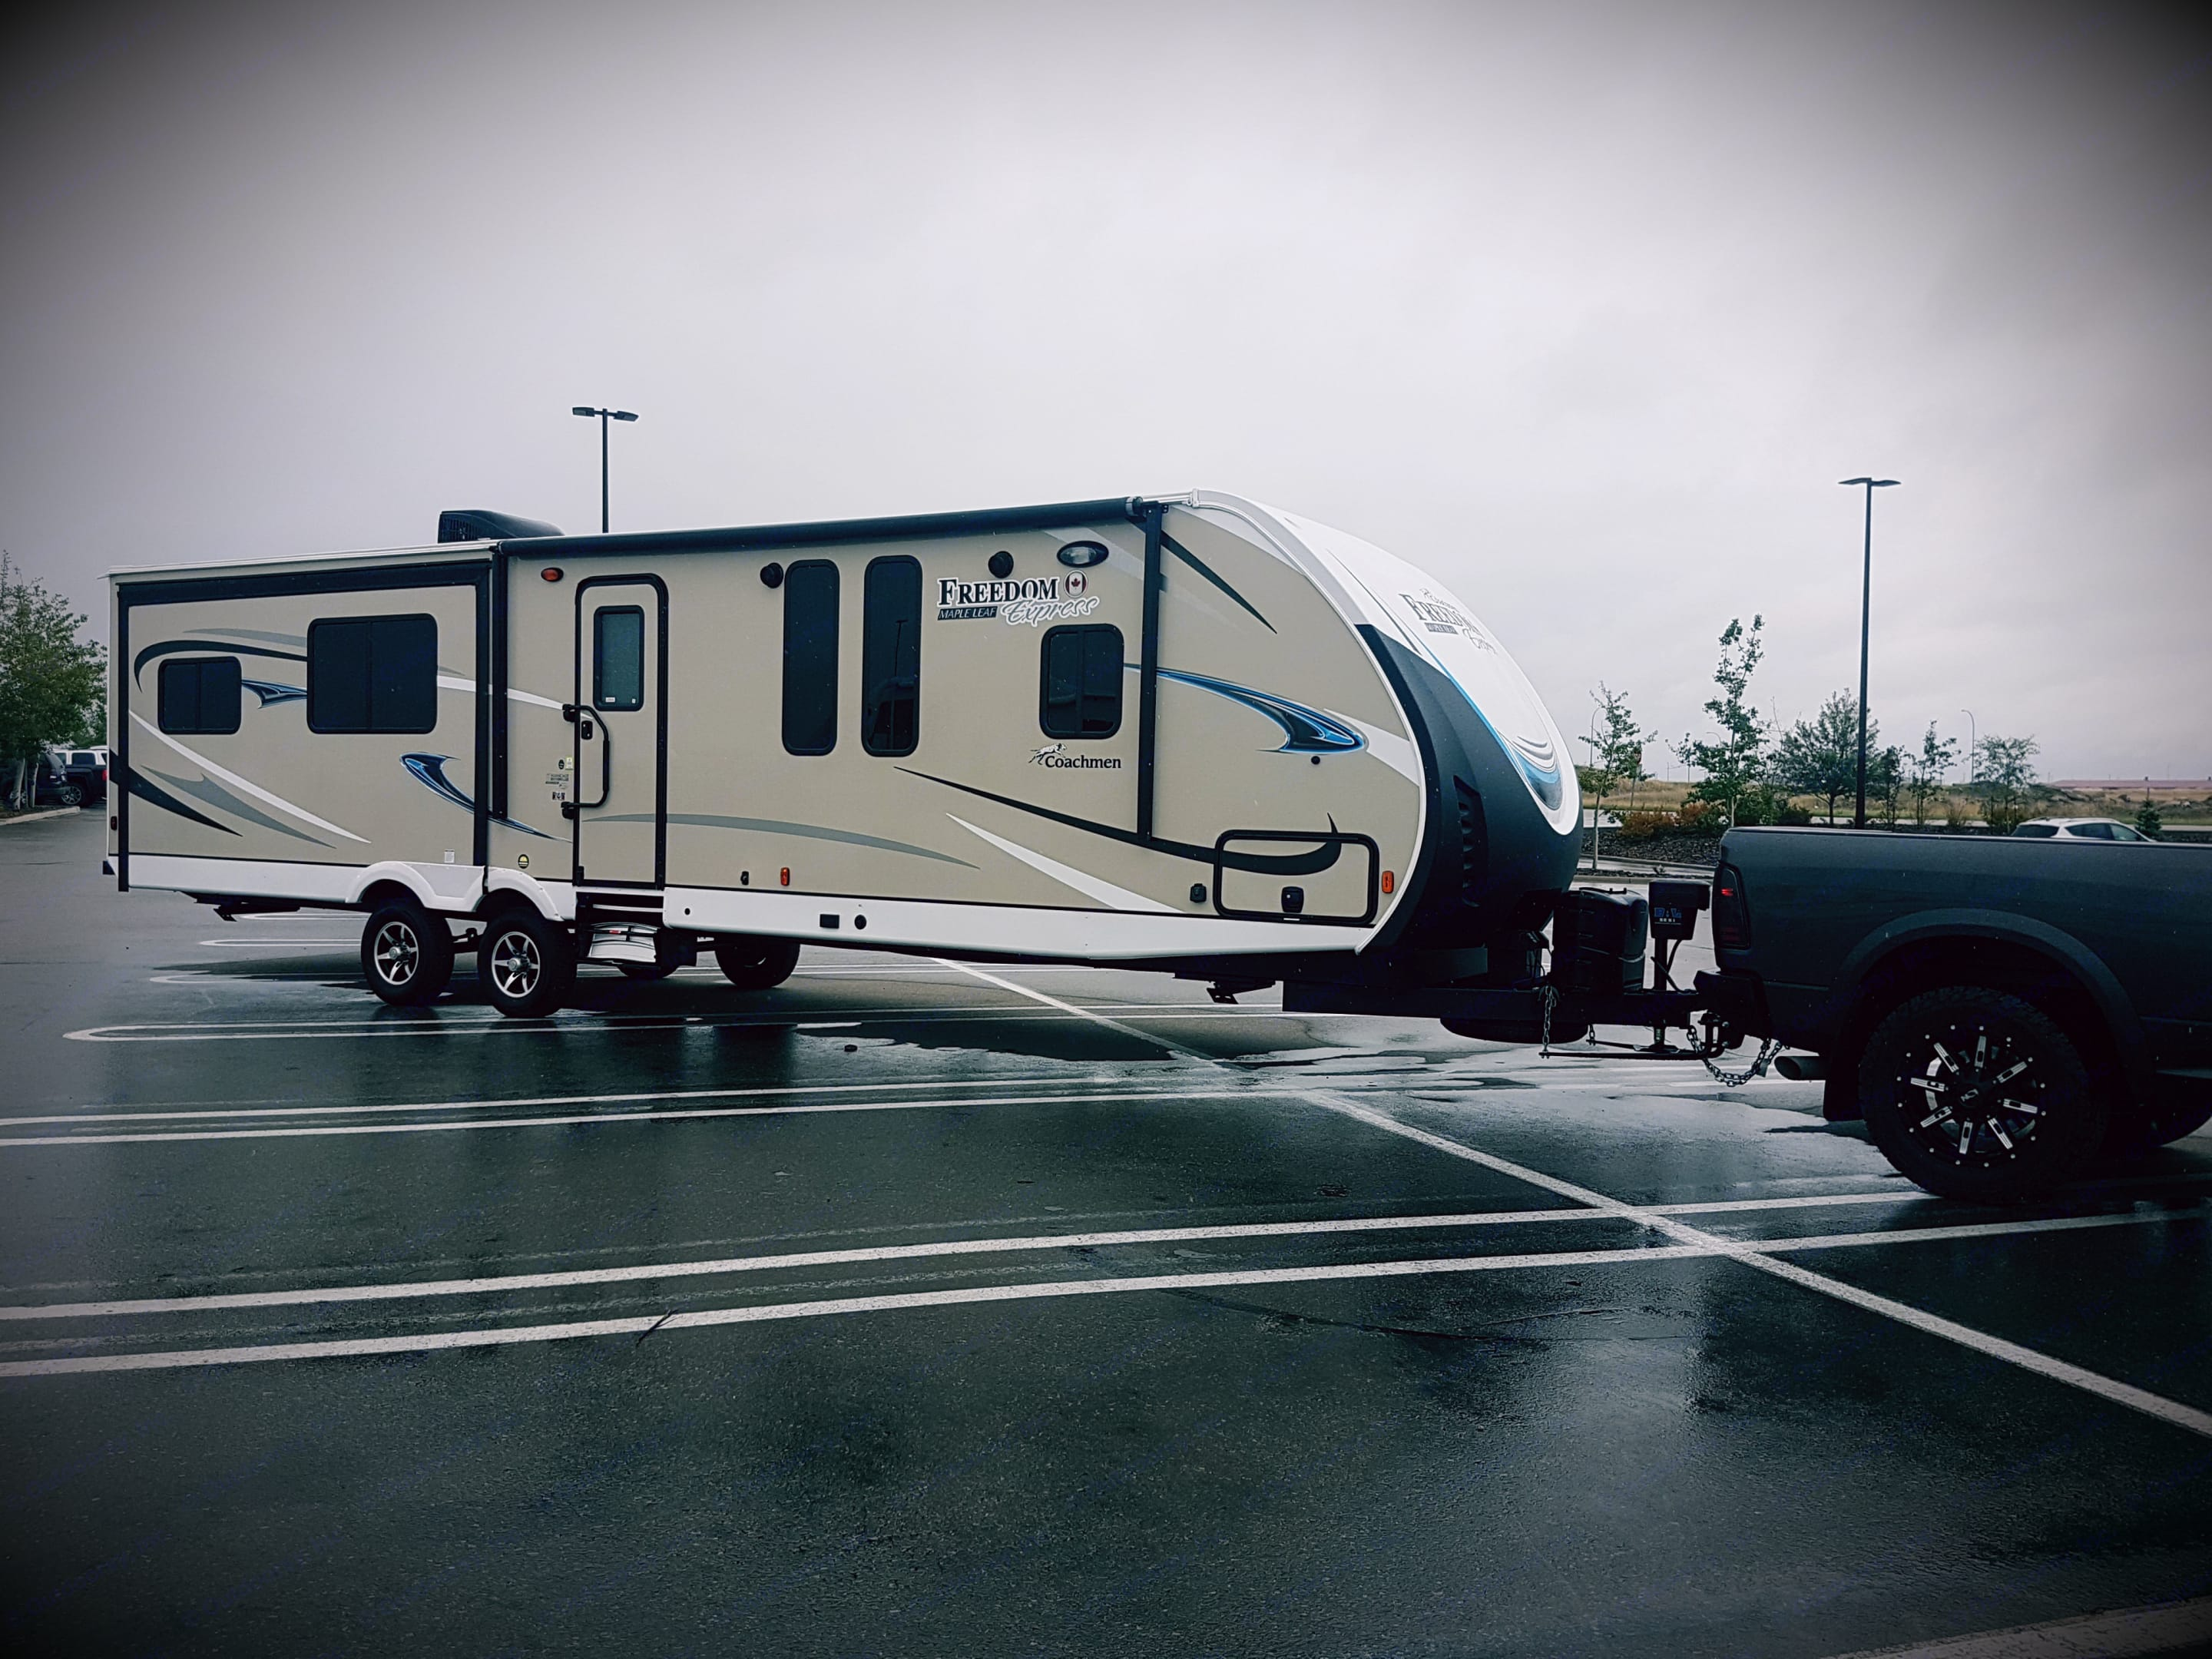 2018 Coachman Freedom Express! 3 slides out. Dry weight is 7890 pounds.. Coachmen Freedom Express 2018